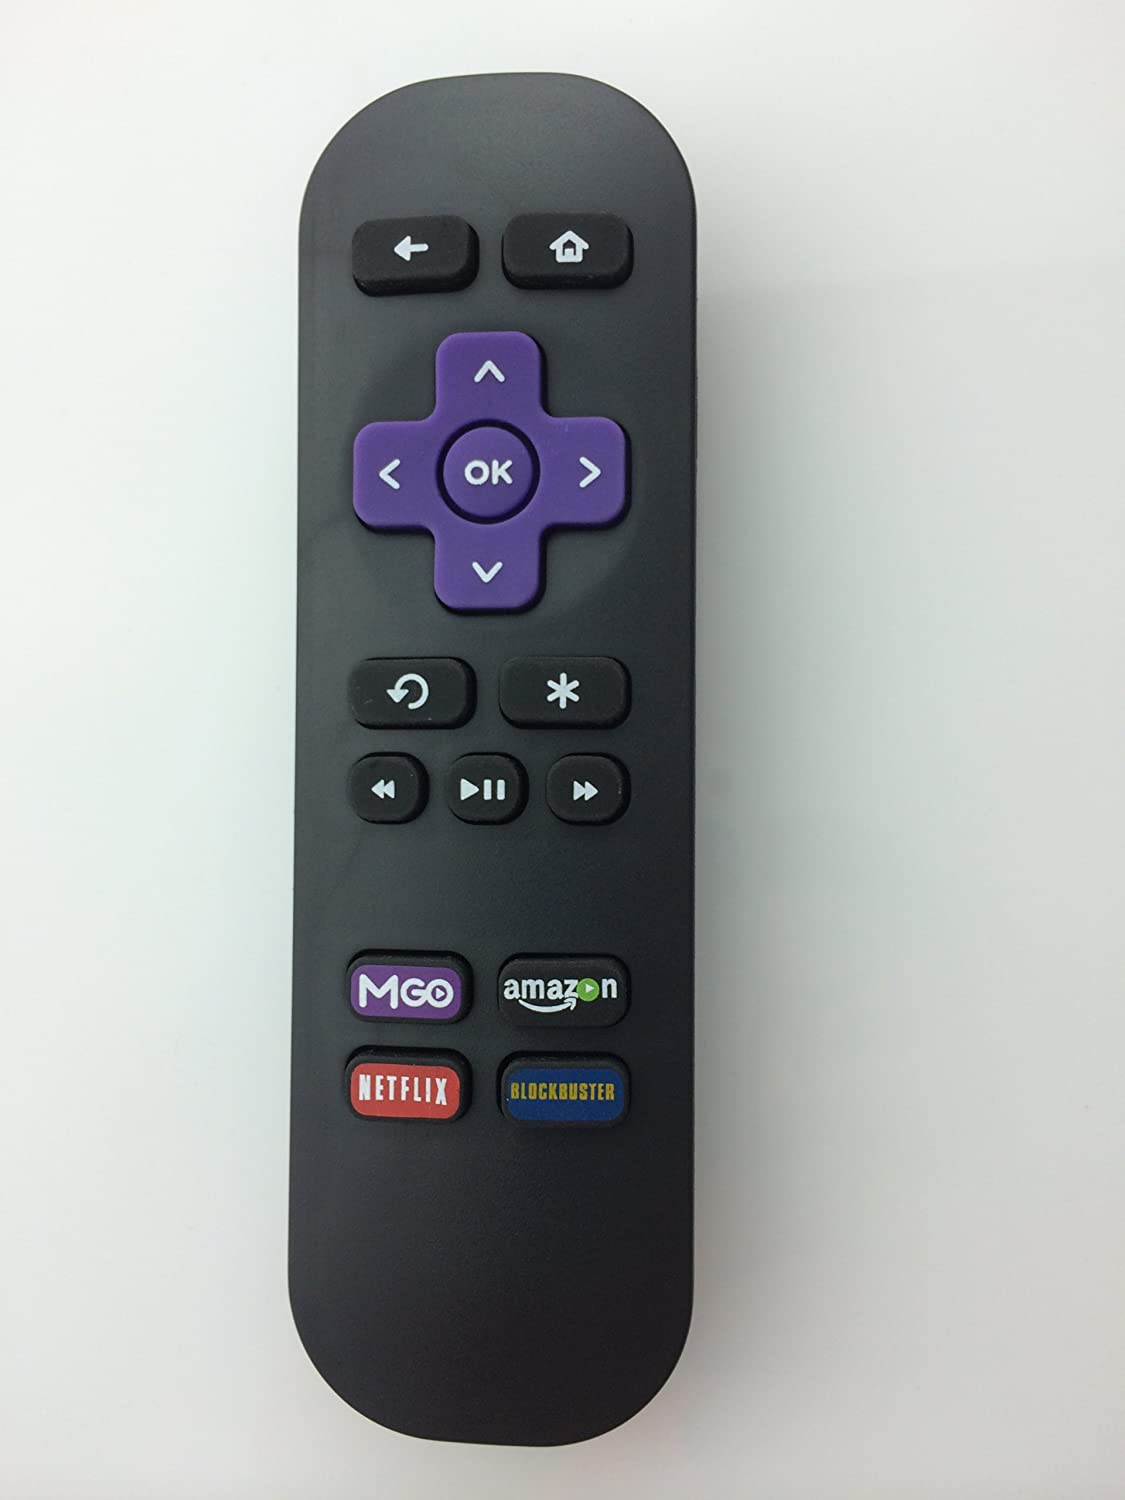 Roku Box: New Beyution Replaced Remote Control For Roku 1 (Lt, Hd